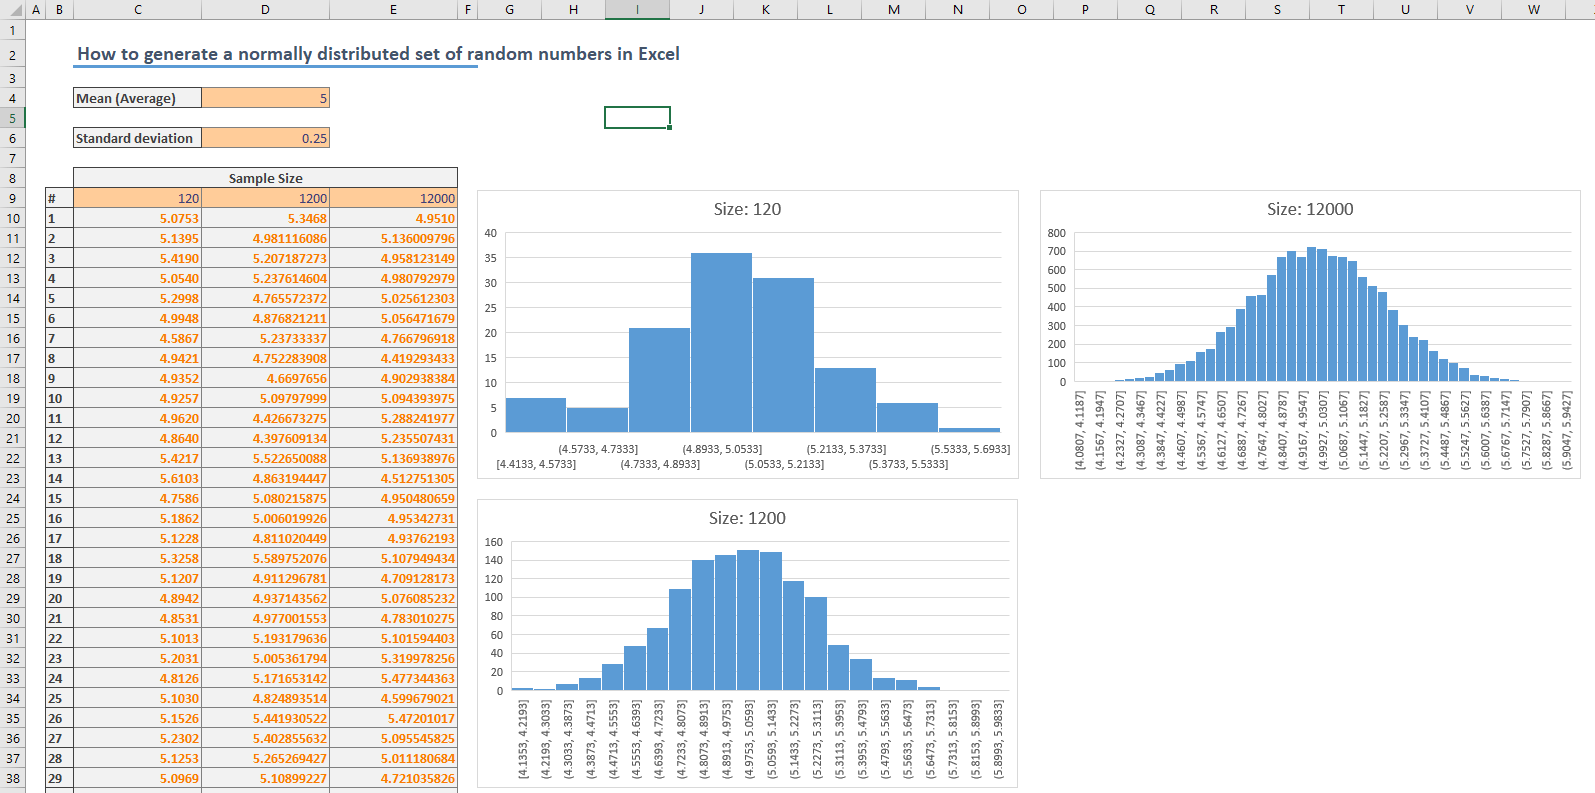 How to generate a normally distributed set of random numbers in Excel